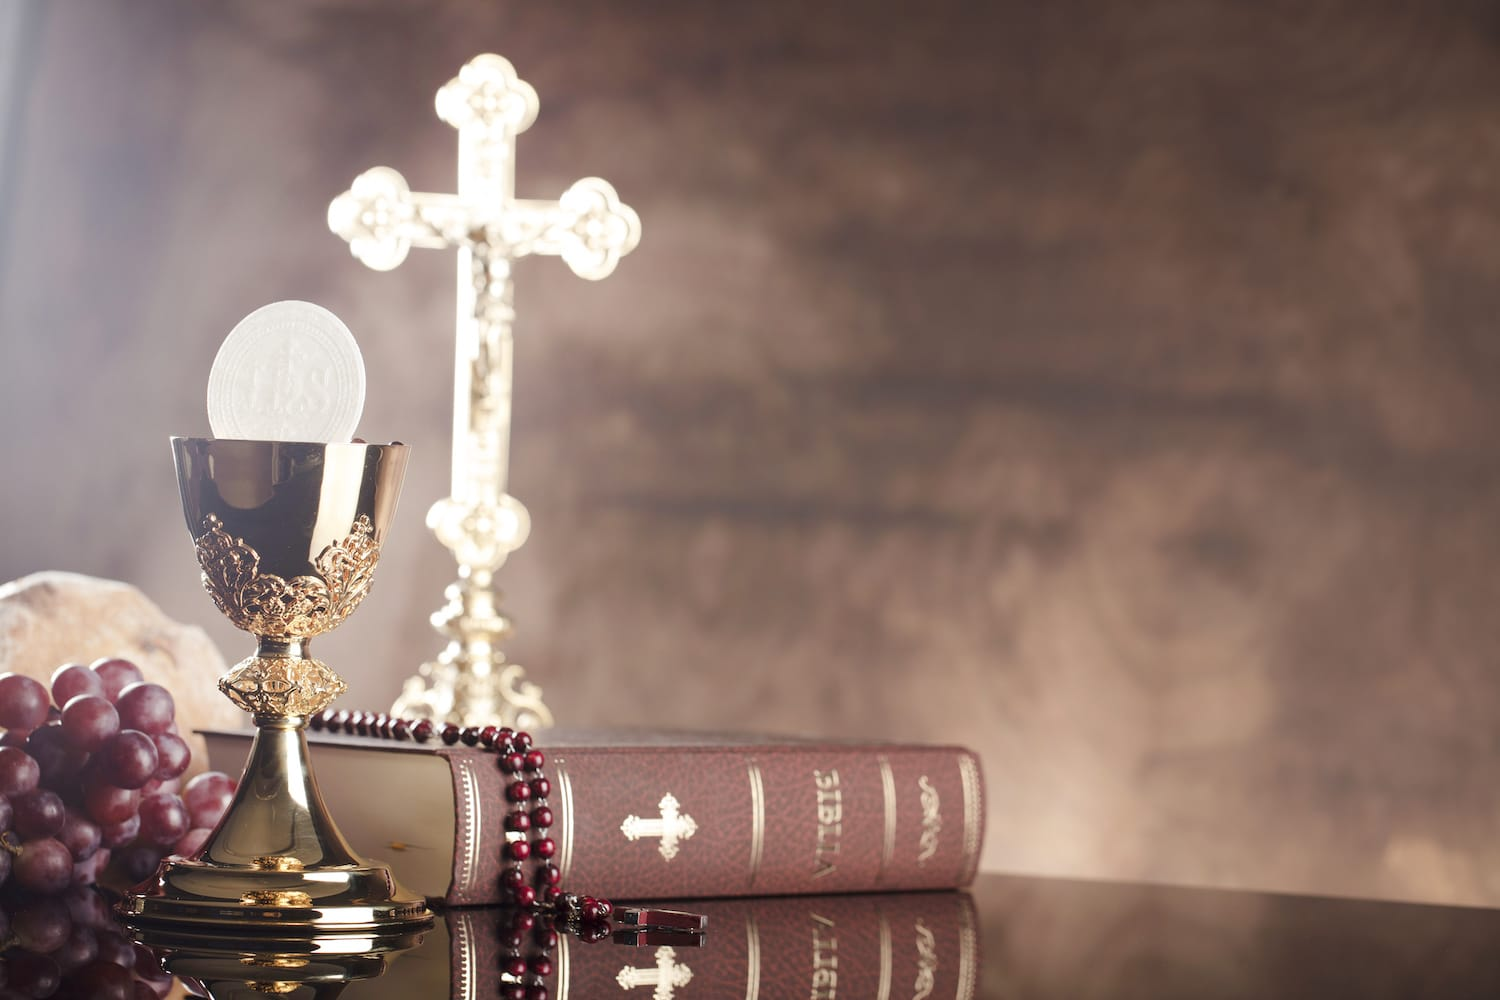 Catholic Drug and Alcohol Rehab